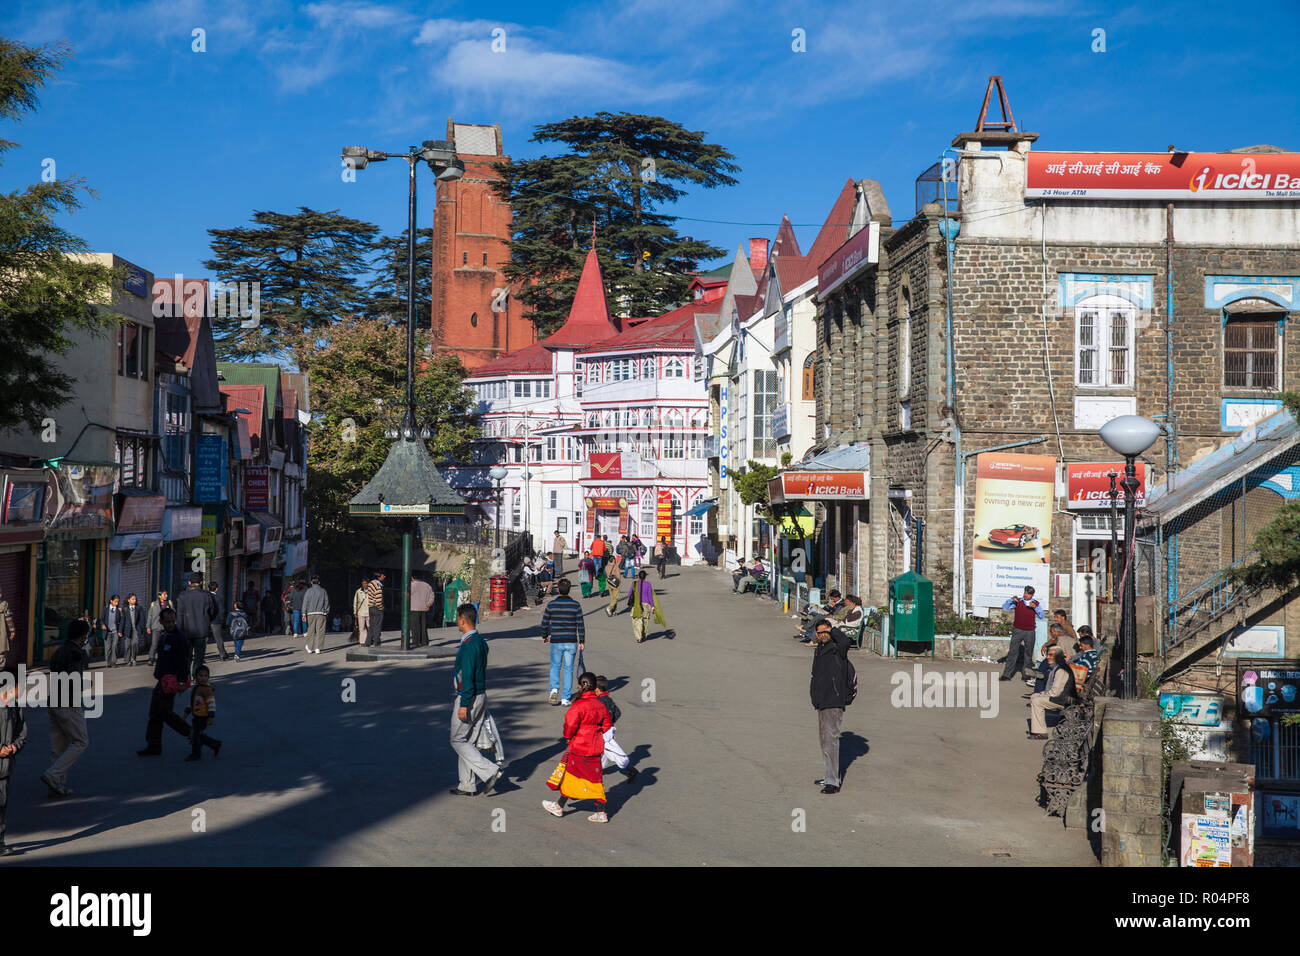 Half-timbered General Post Office, The Ridge, Shimla (Simla), Himachal Pradesh, India, Asia - Stock Image